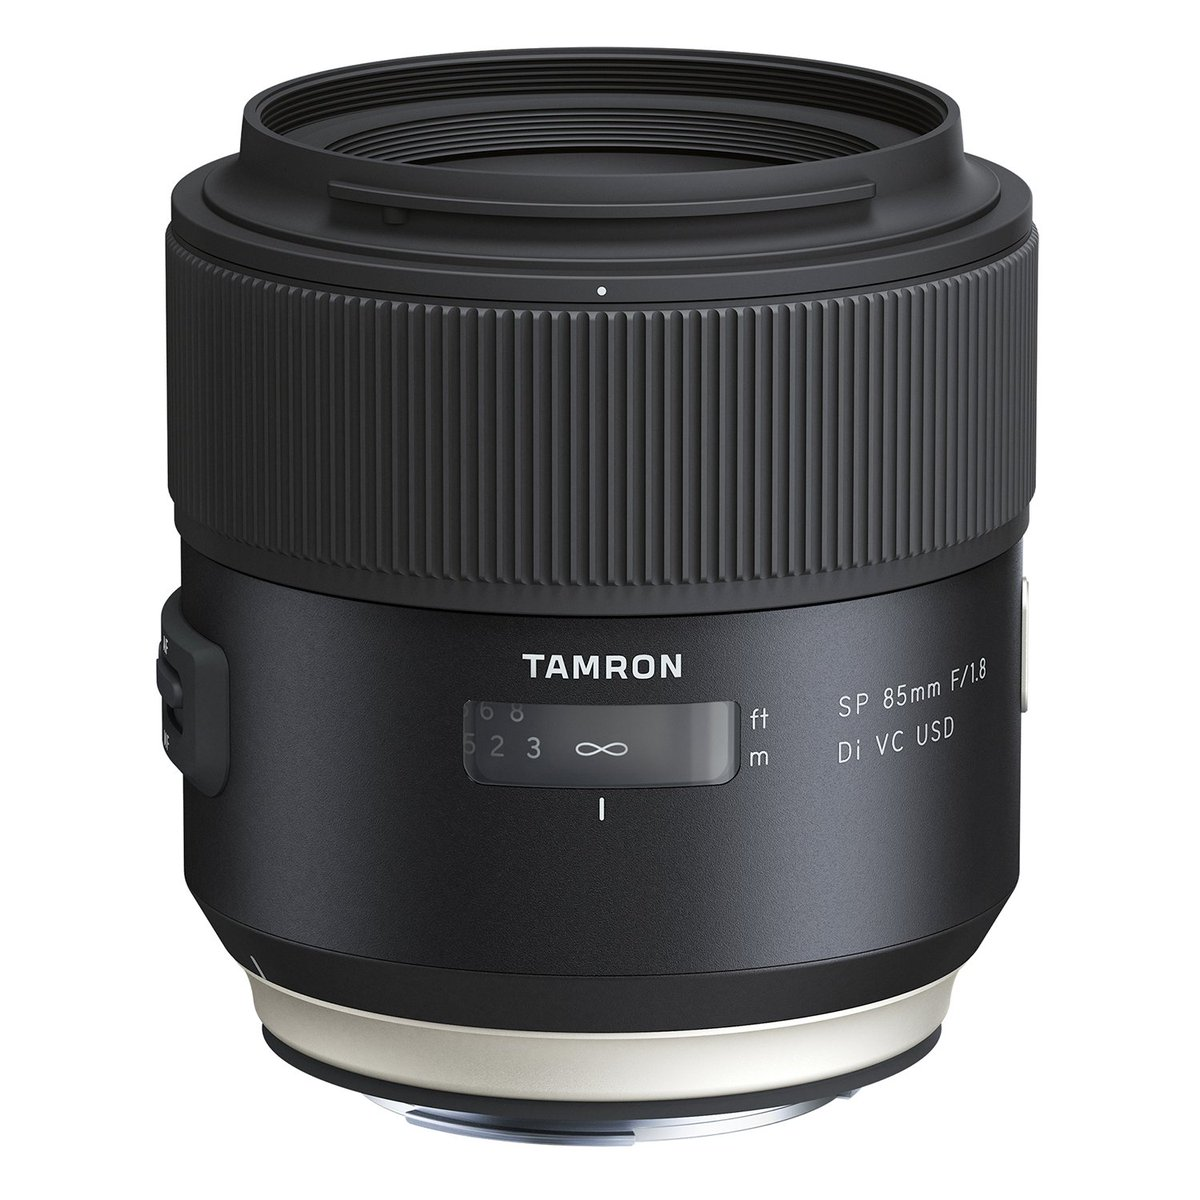 Tamron SP 85mm F/1.8 Di VC USD prime lens has been recognized with 2016 POP Award! https://t.co/MgzgiAZbvM https://t.co/CwIyaXOfW3